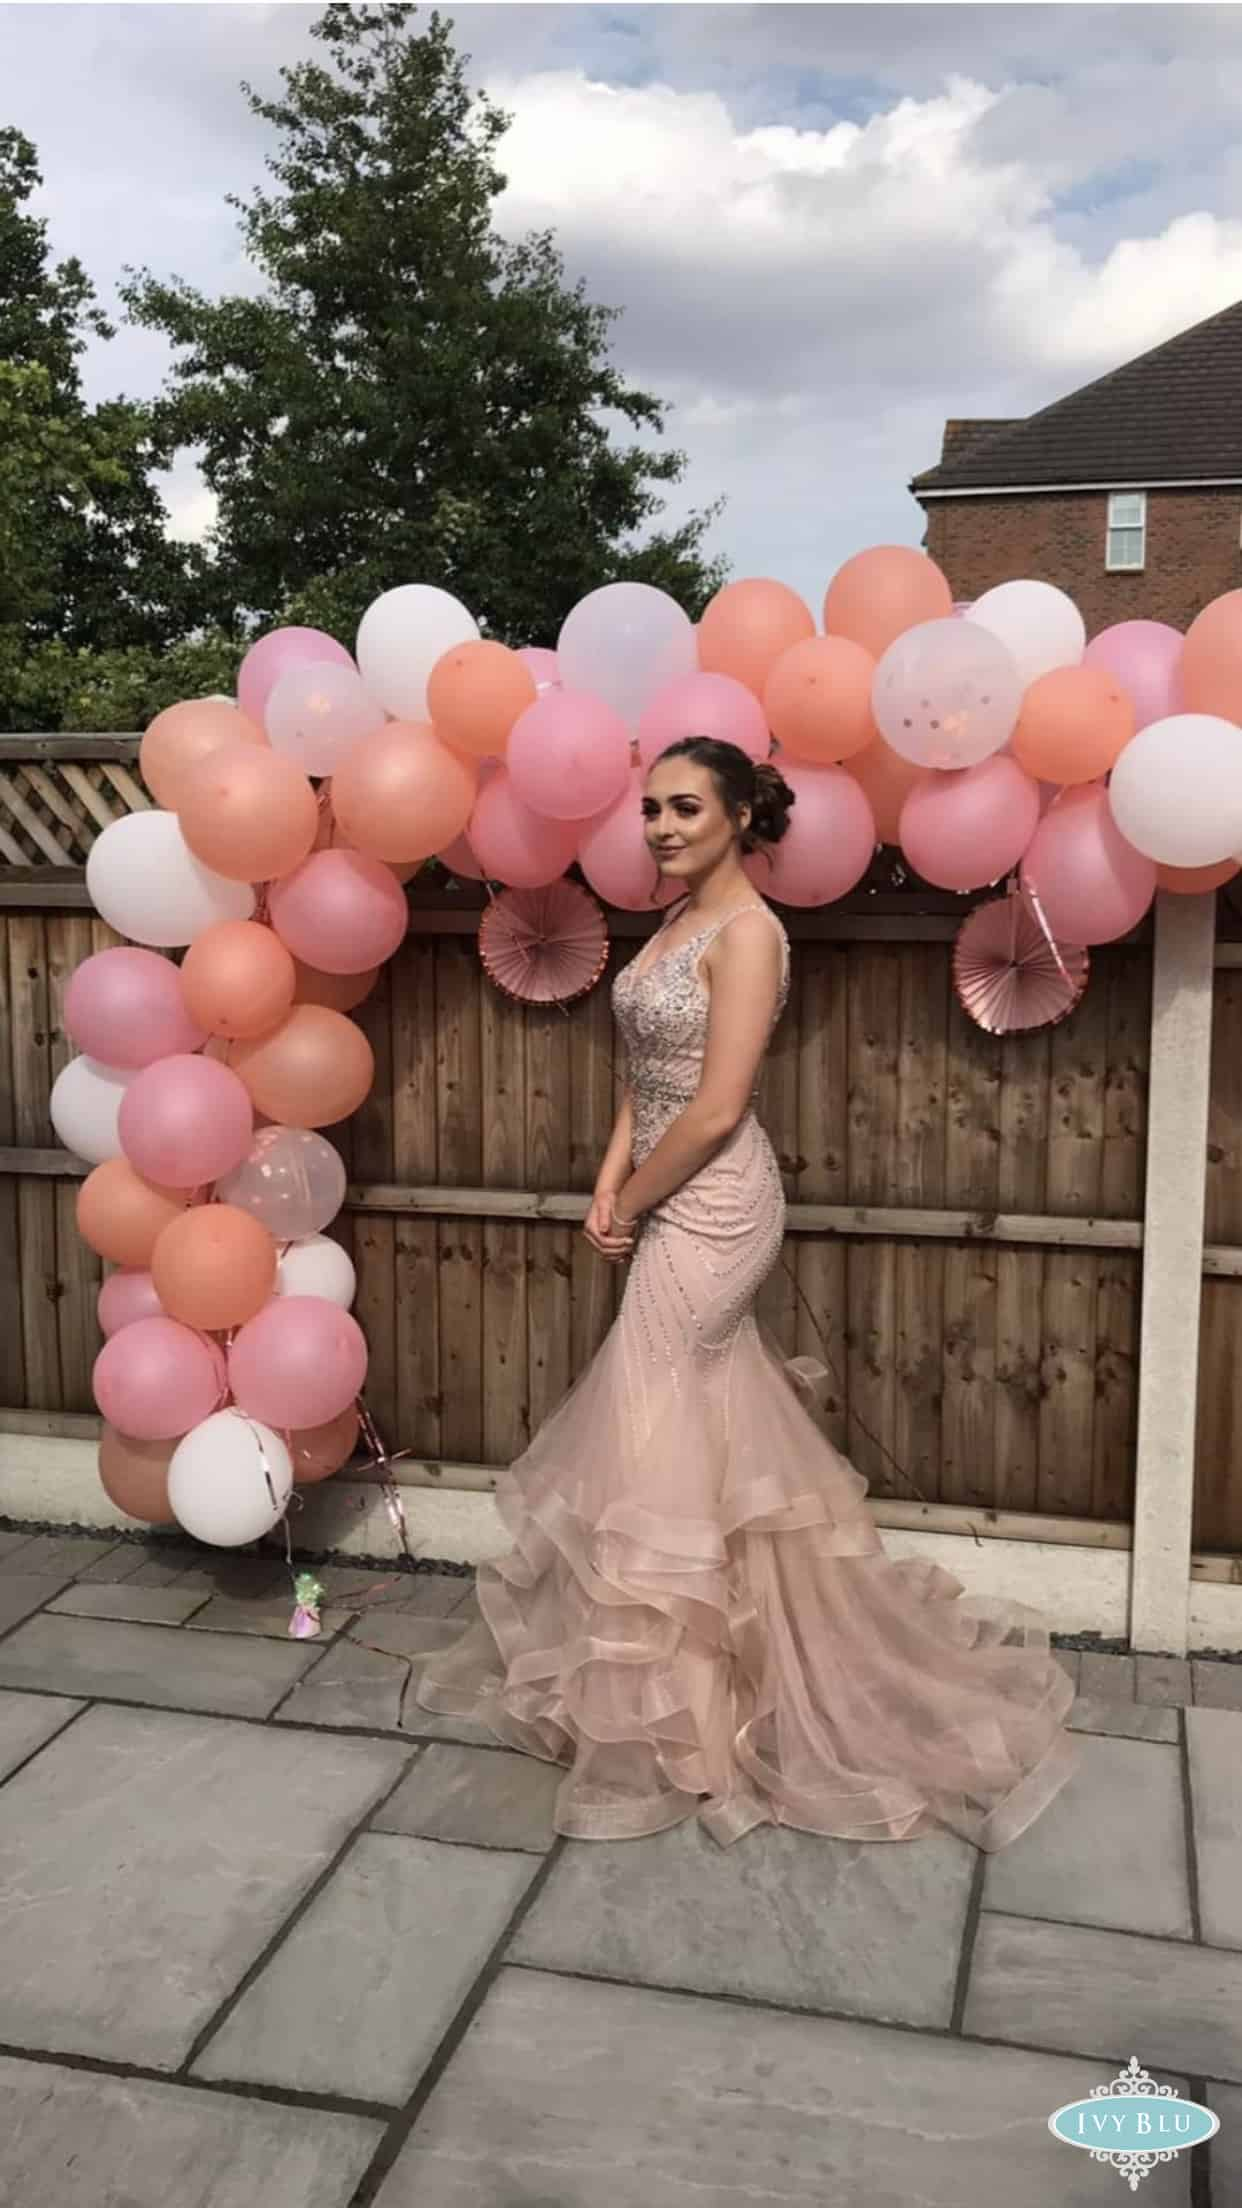 Pron Girl With Full Length Ruffle Dress And Balloons